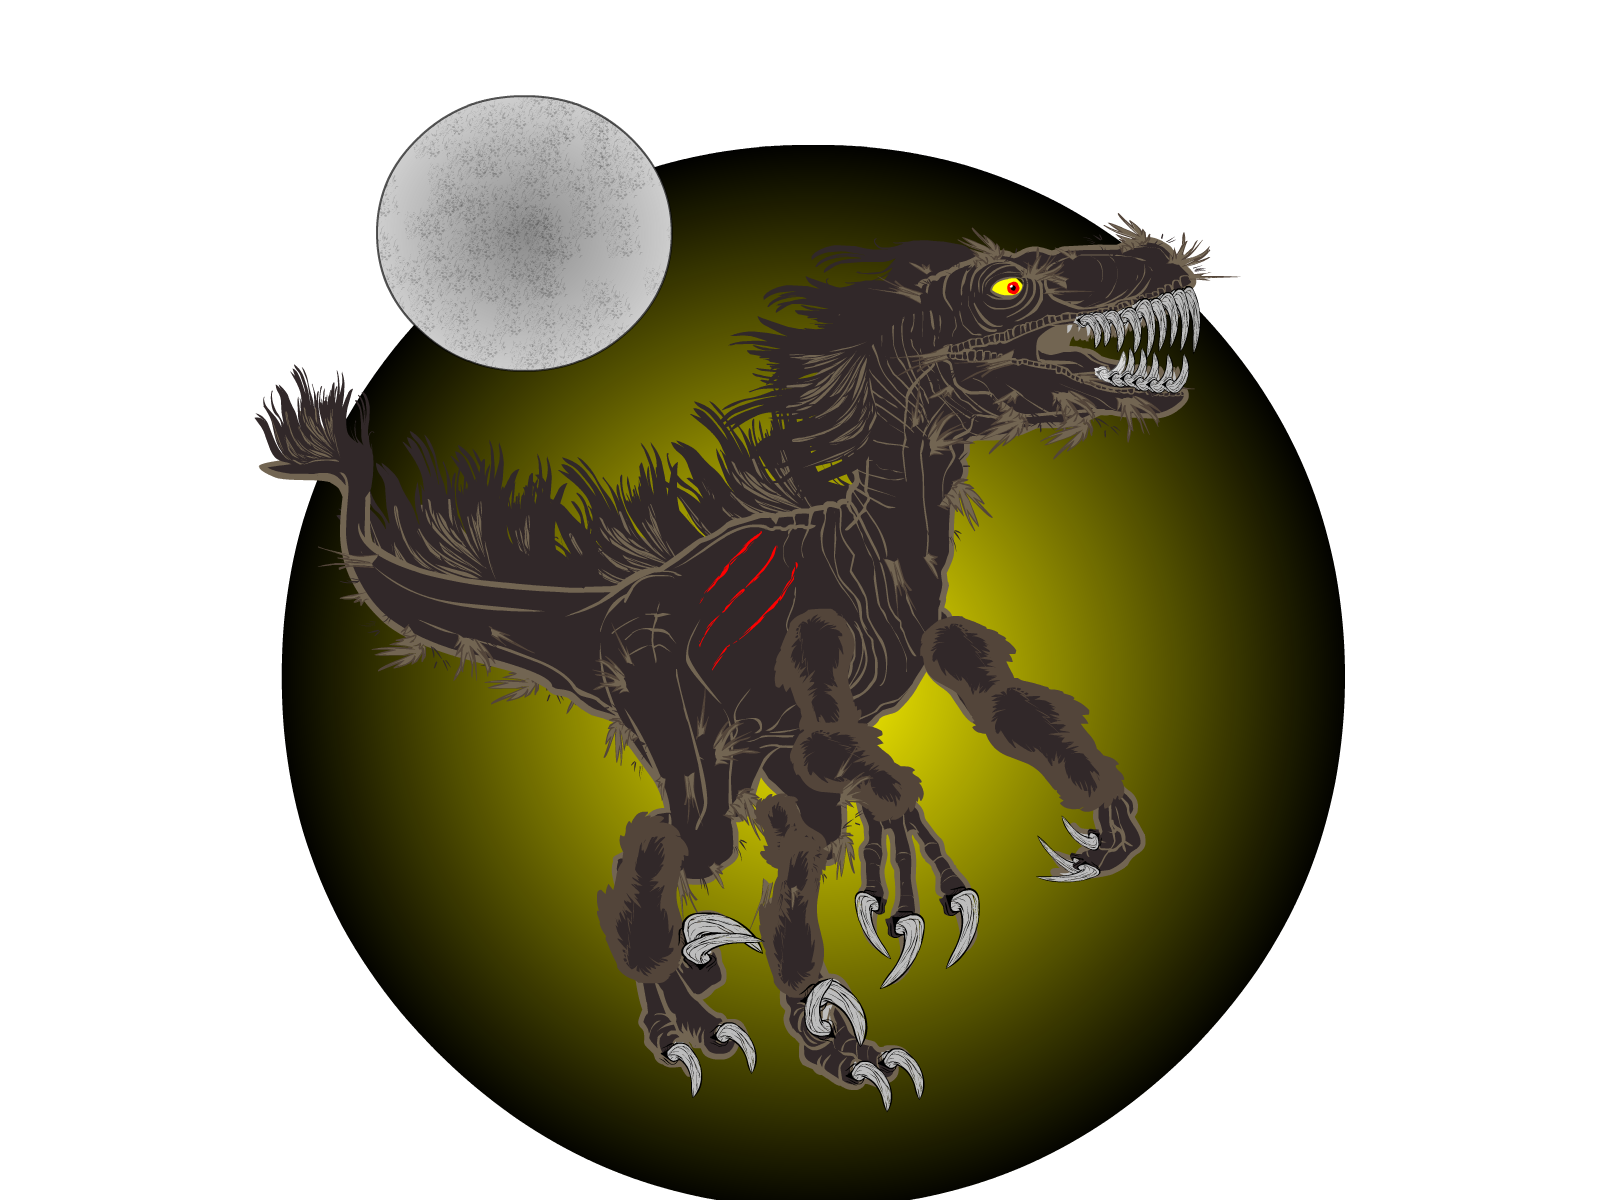 http://www.heromachine.com/wp-content/legacy/forum-image-uploads/nha247/2012/04/NHA247-WerewolfDinosaur.PNG.png